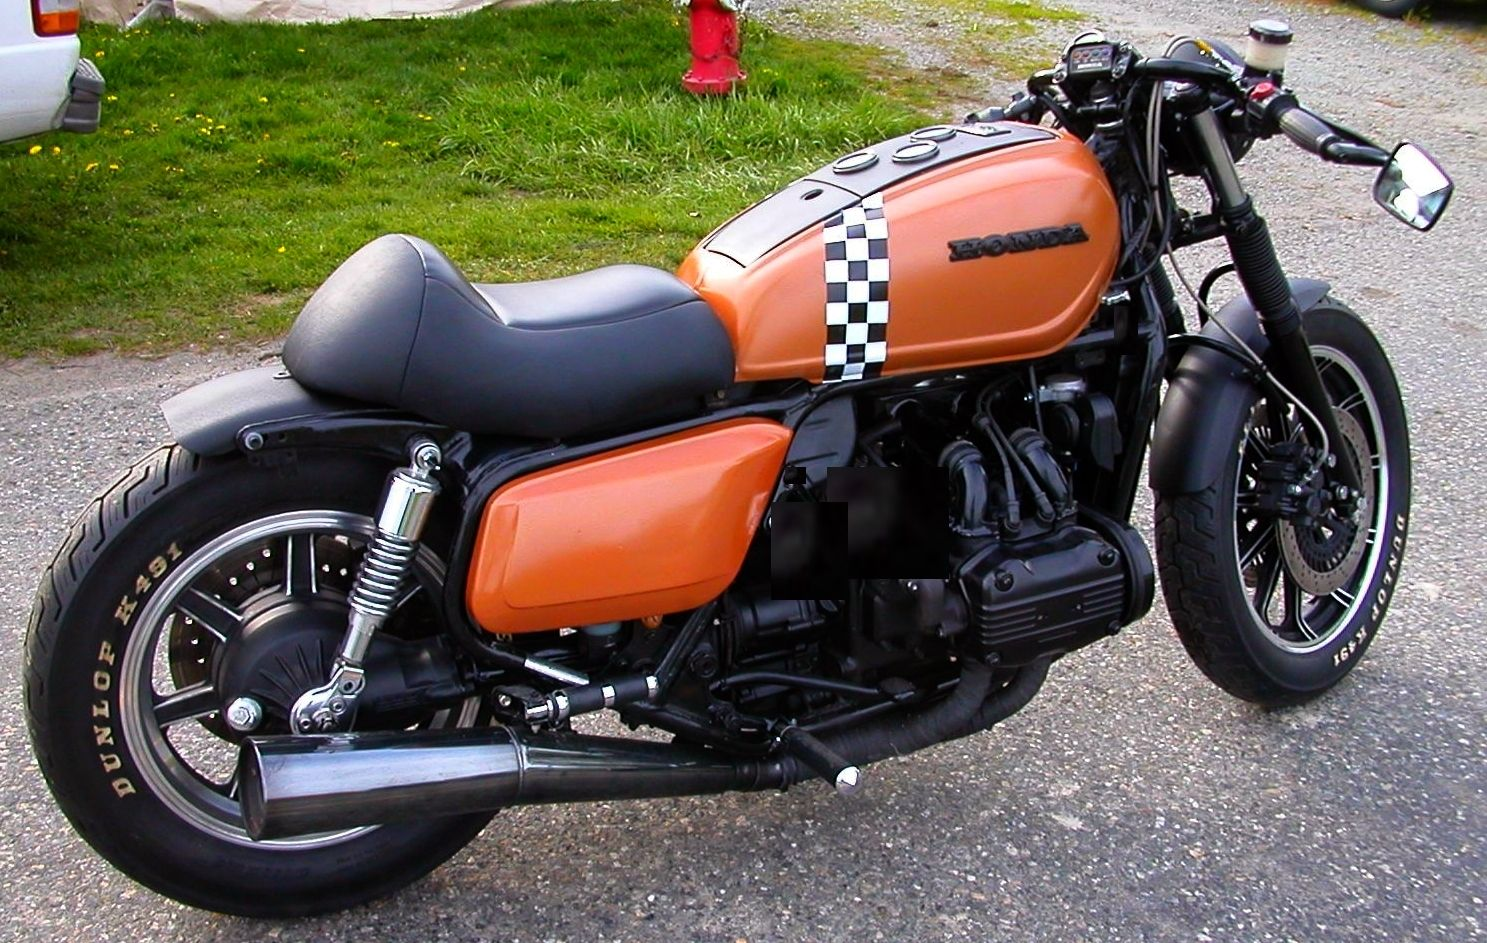 """The """"Bomber"""" GL1100 project - added video"""